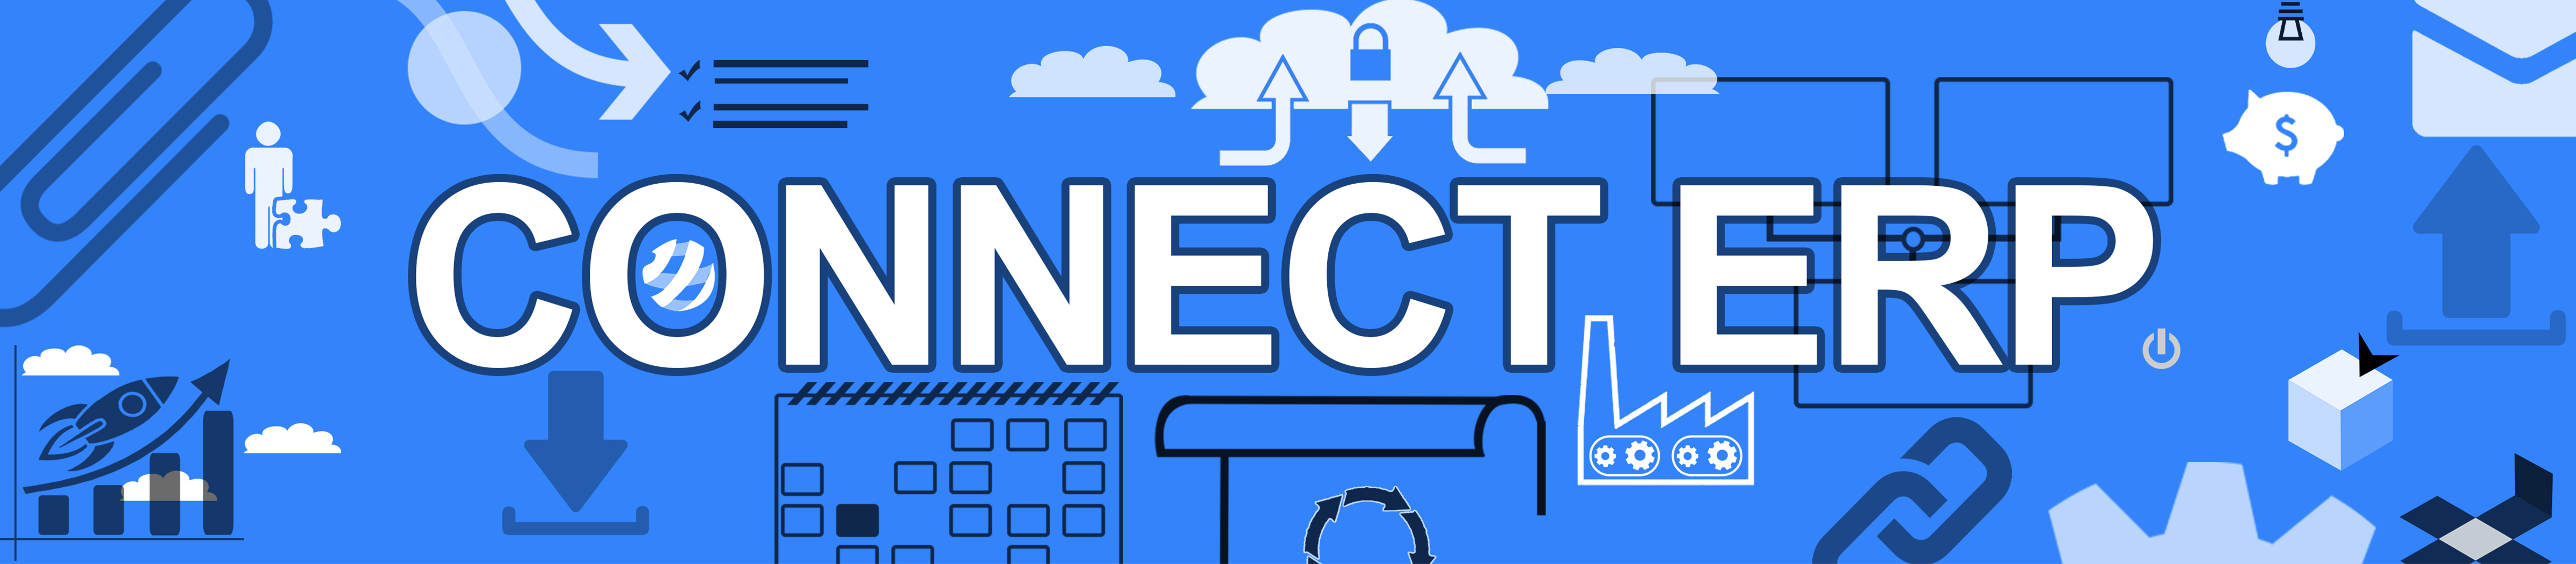 connect-product-banner